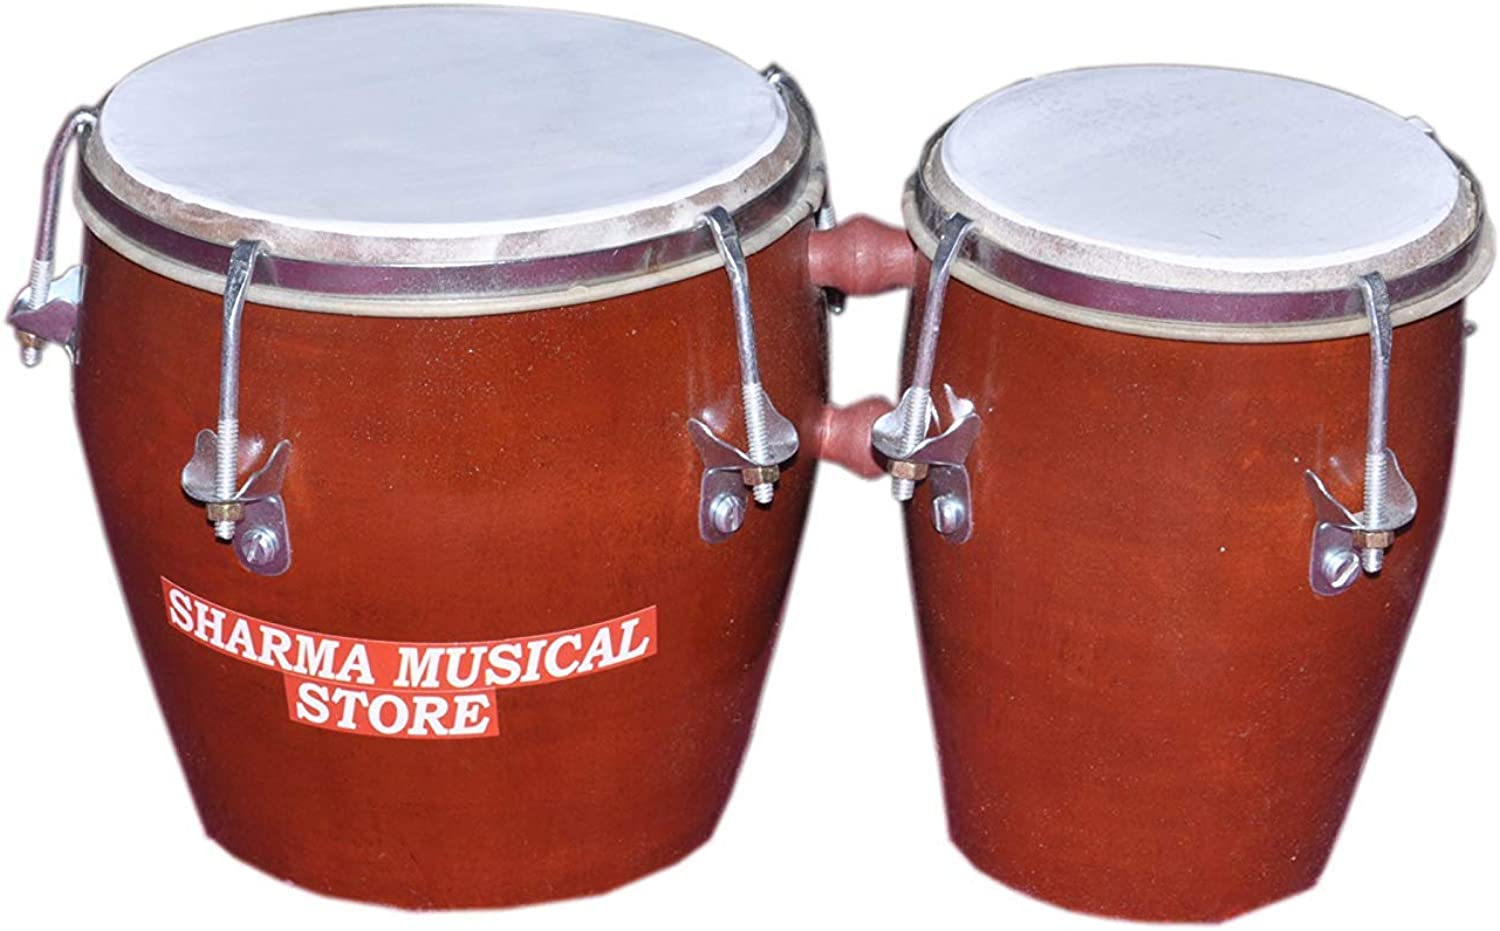 Indian Classical Musical Instrument Sharma Musical Store Wooden Bongo